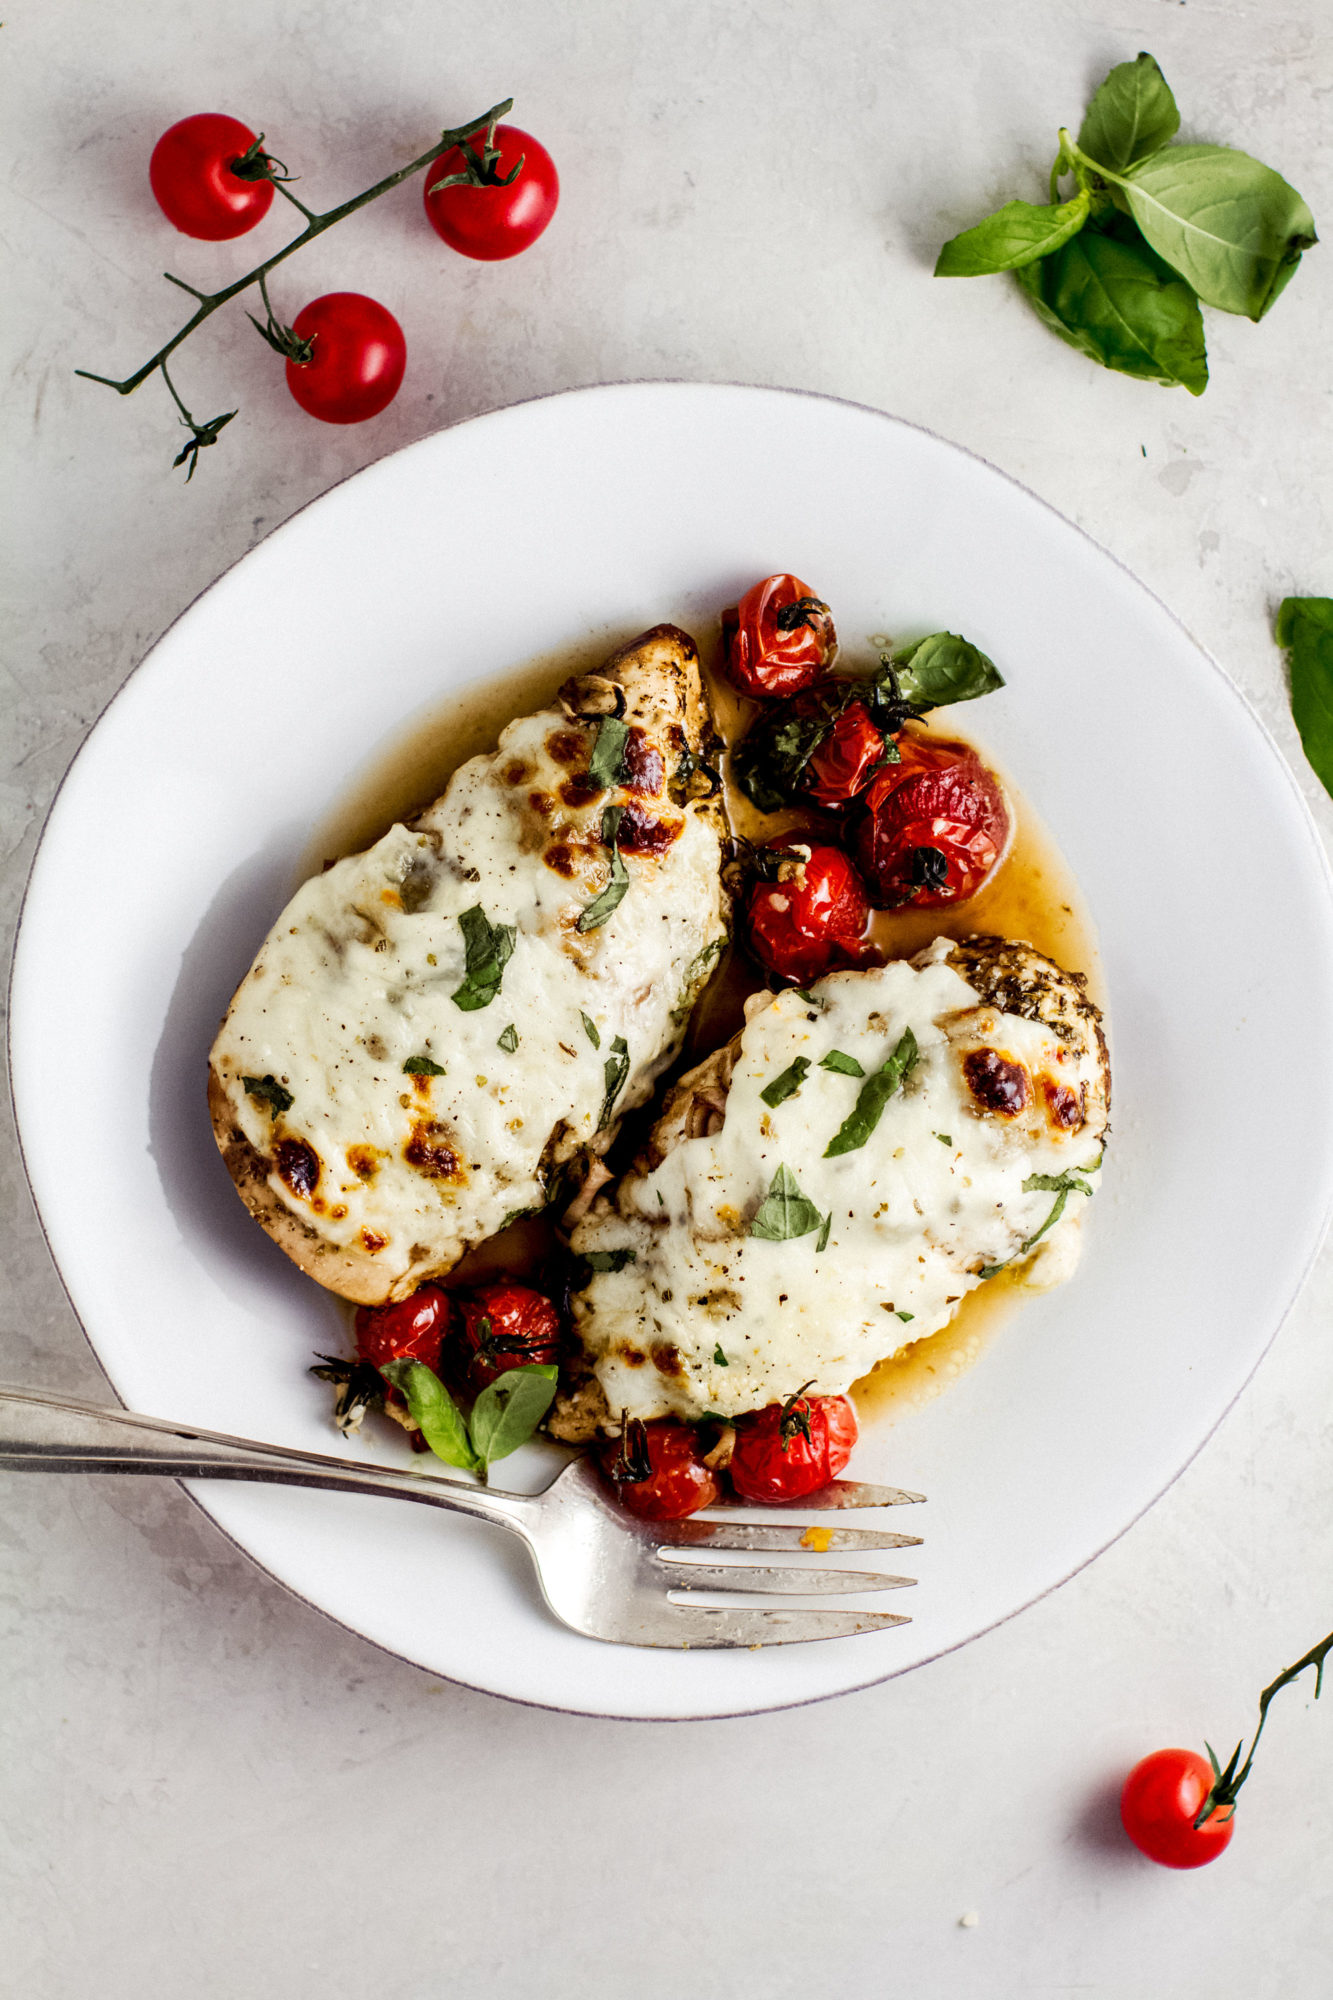 balsamic chicken covered in melted mozzarella on a white plate with silver serving fork